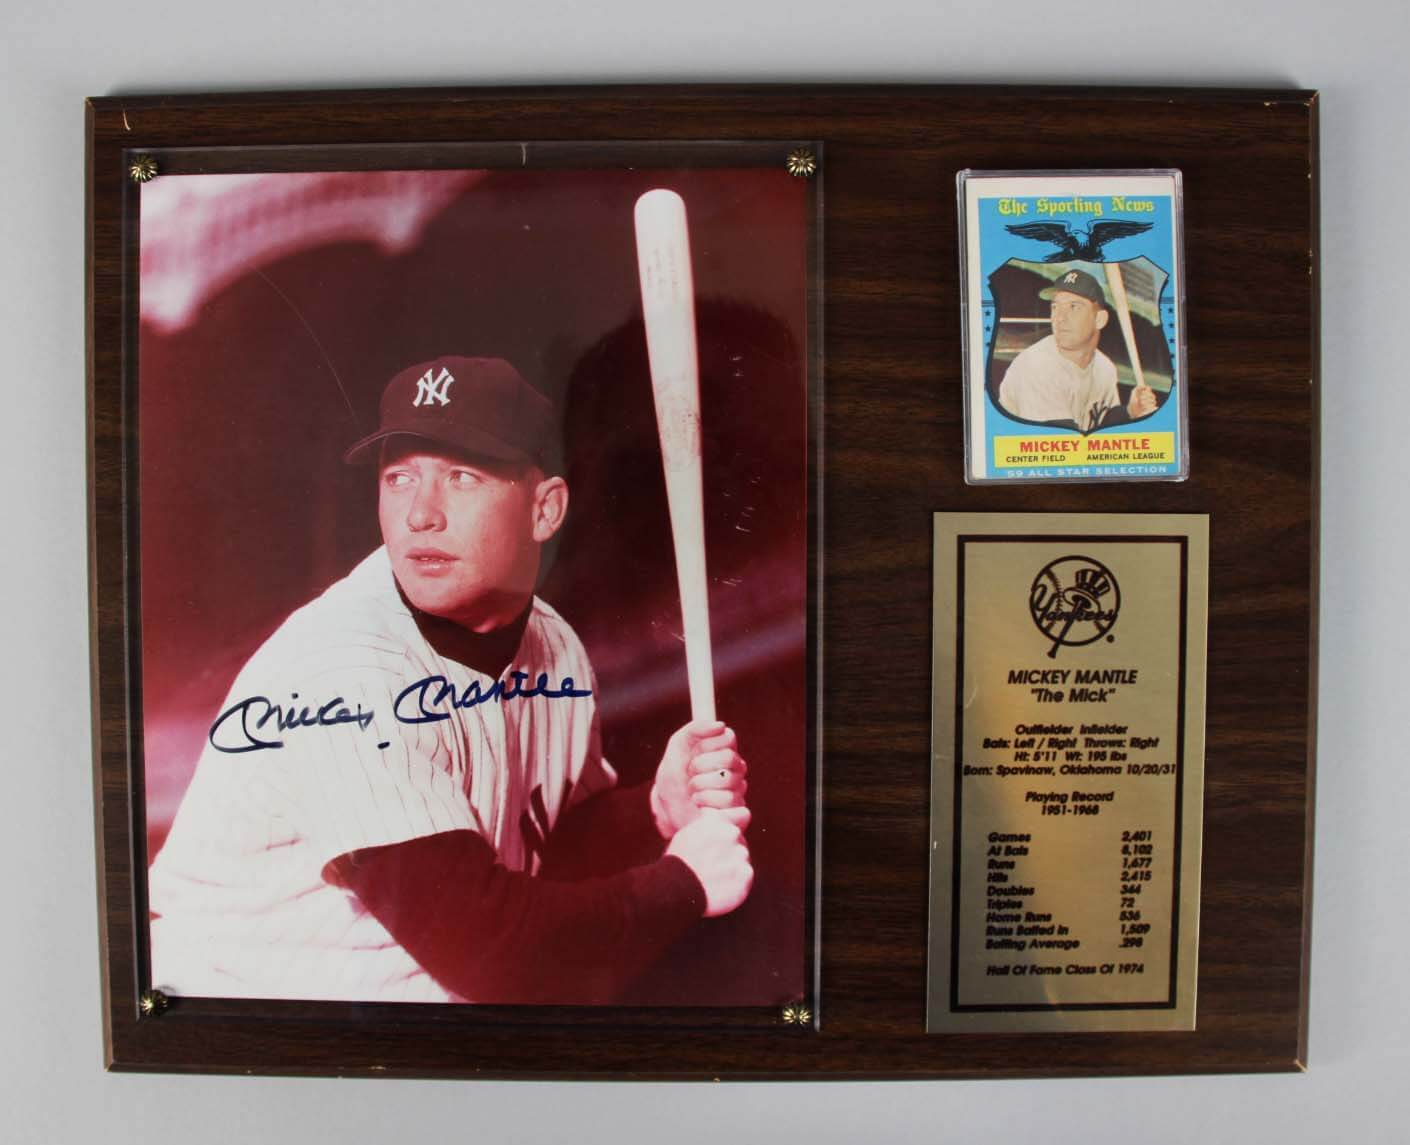 New York Yankees Mickey Mantle Signed Photo Display - COA